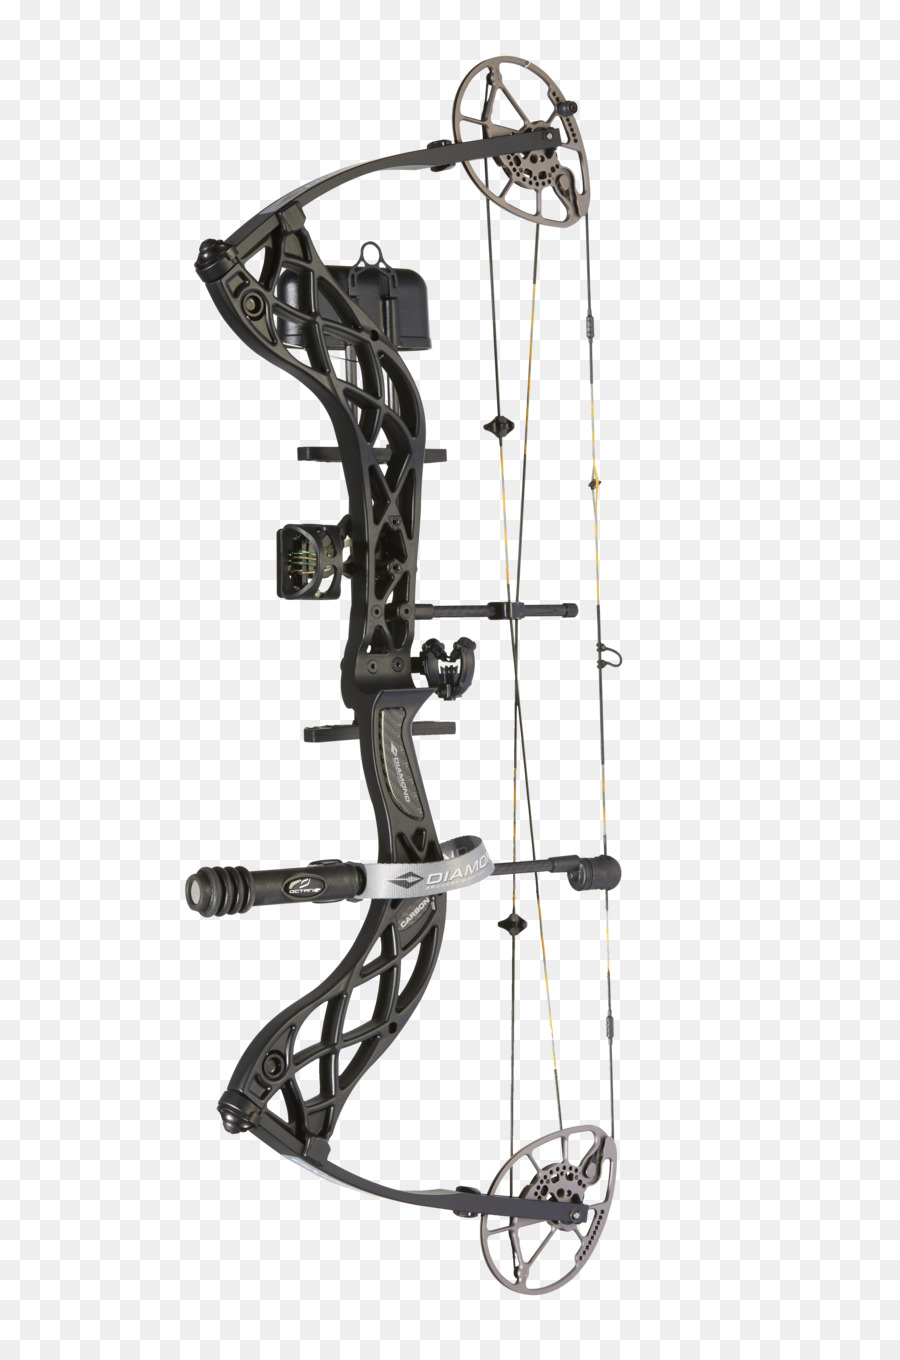 archery cover png download - 3840*5760 - Free Transparent Compound